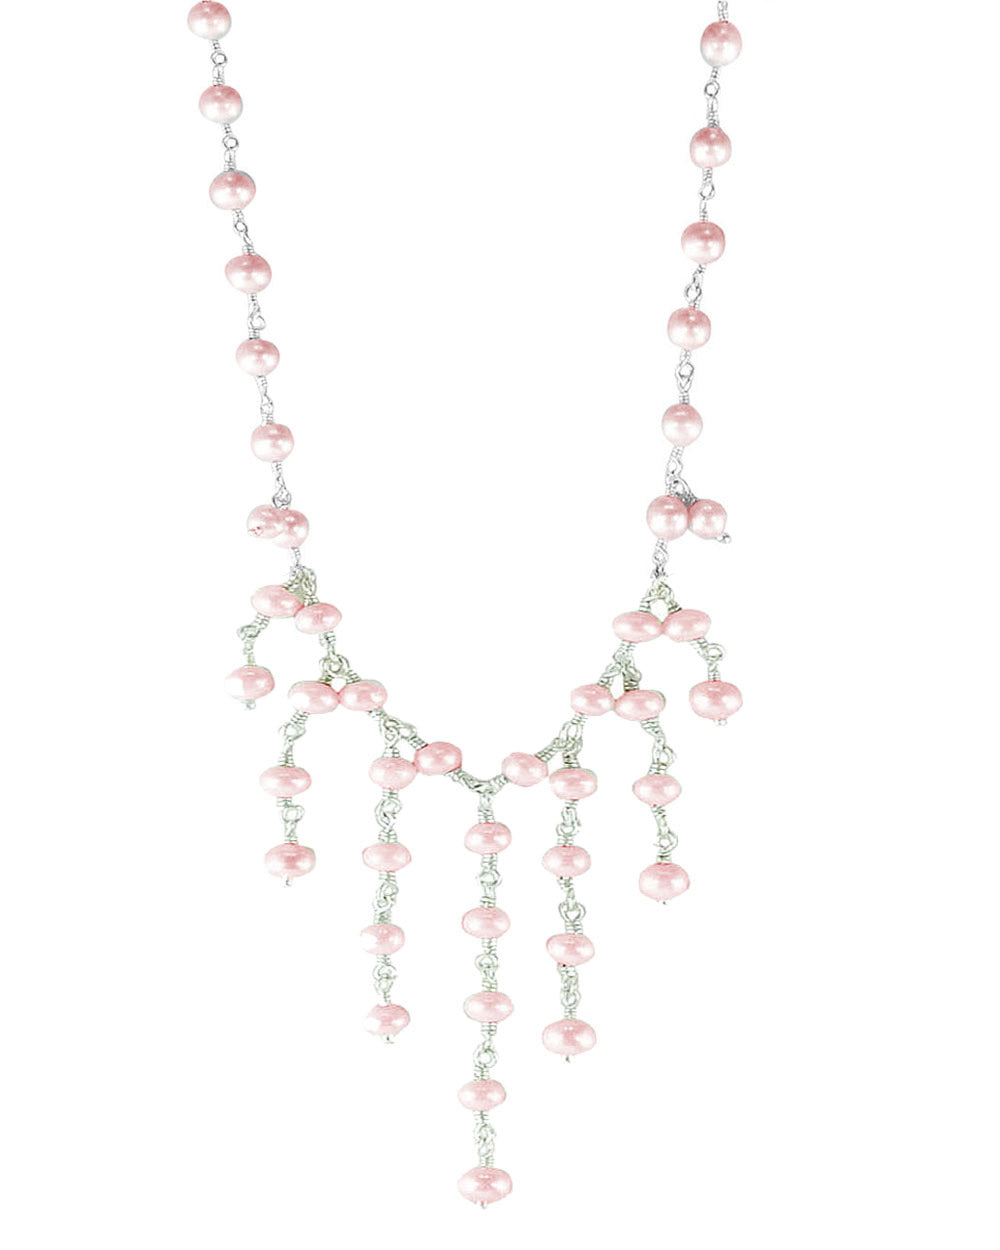 Cascades Peach Pearls Layered Necklace